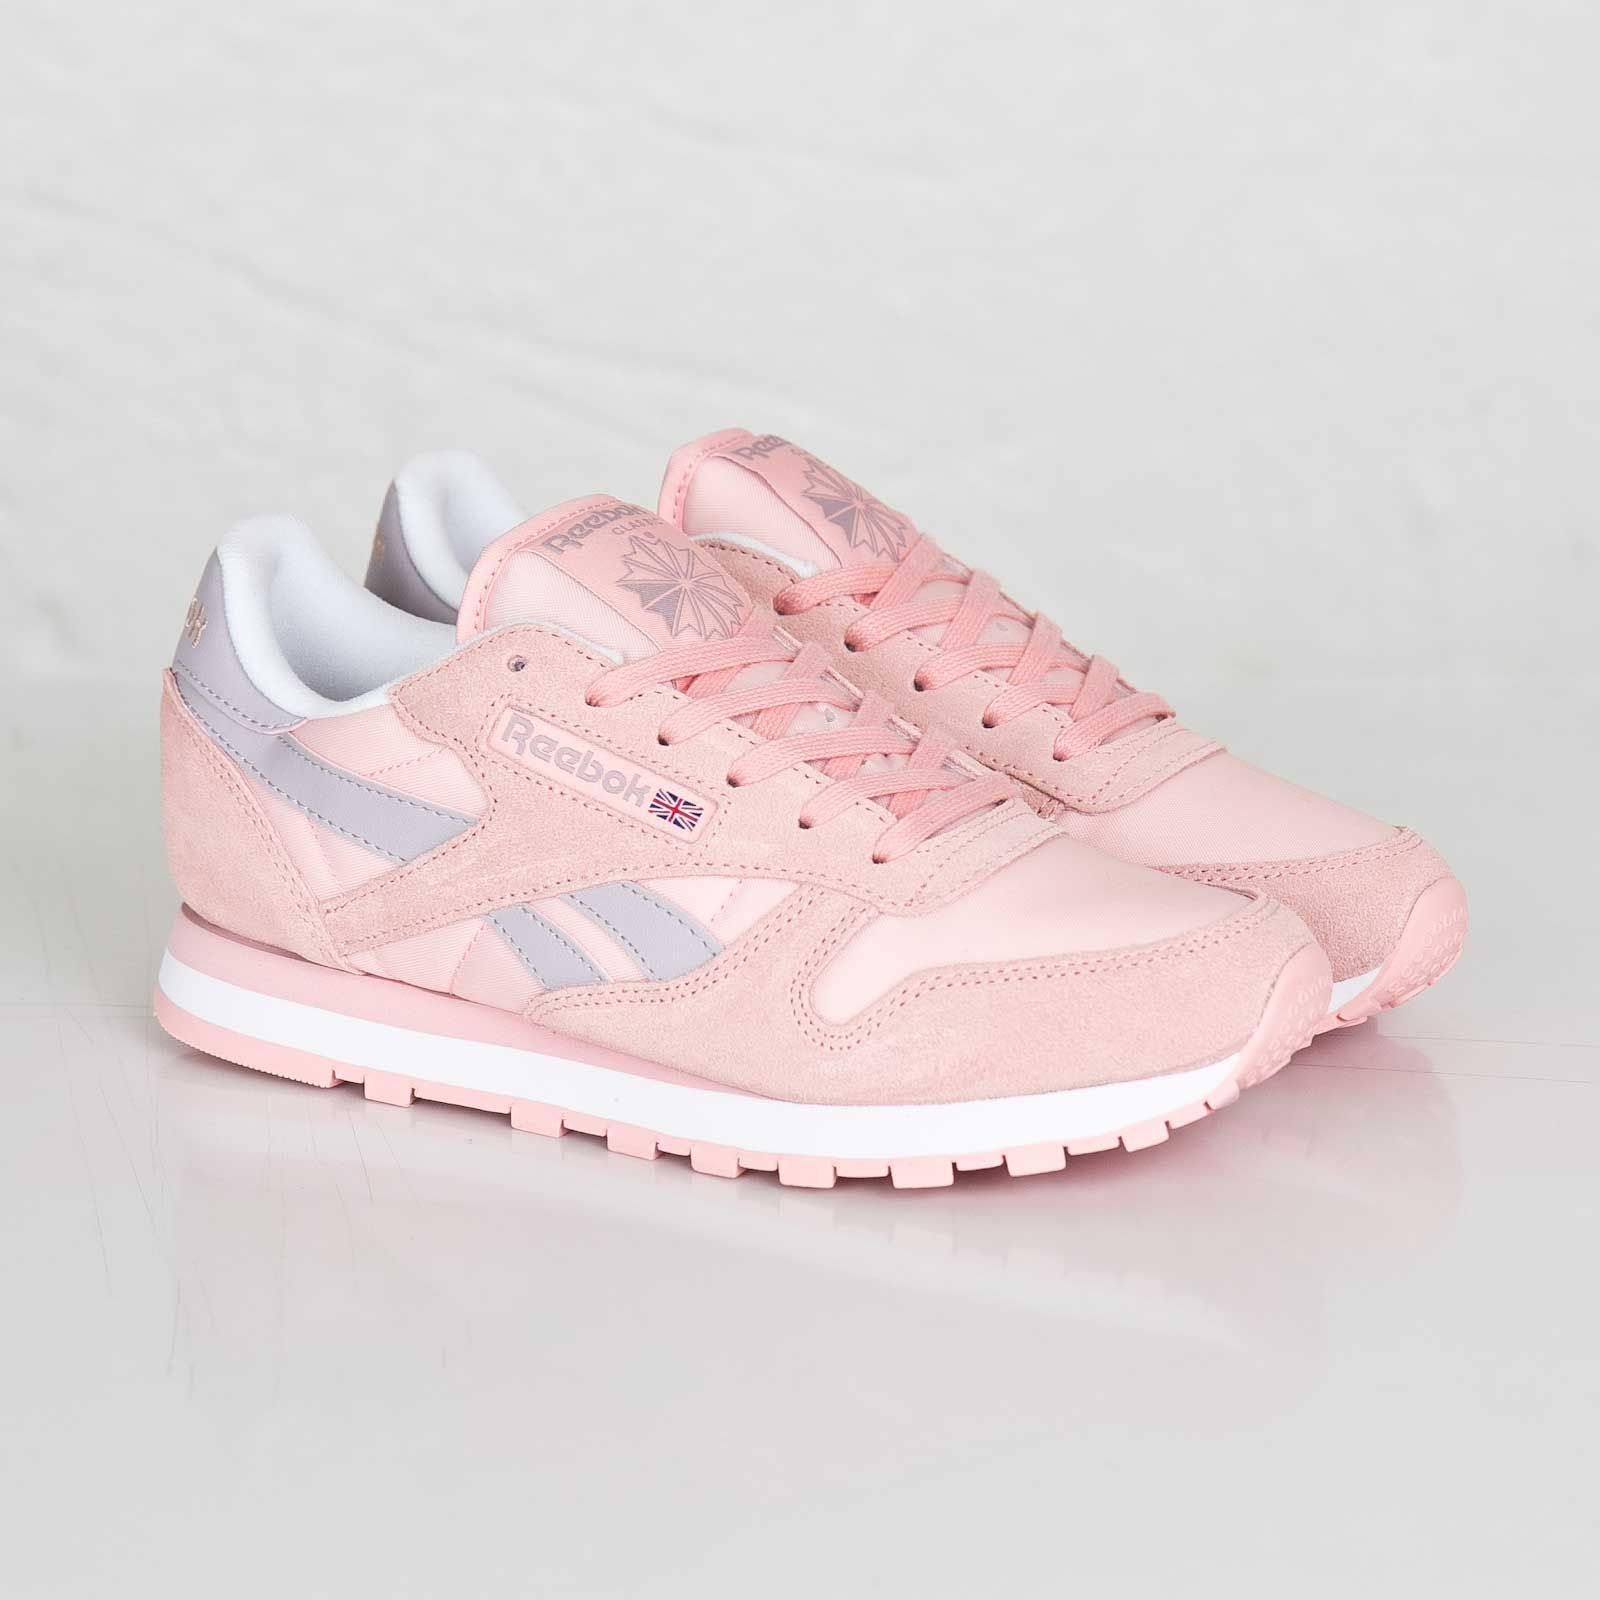 Reebok Classic Leather Seasonal I | Zapatillas, Zapatillas